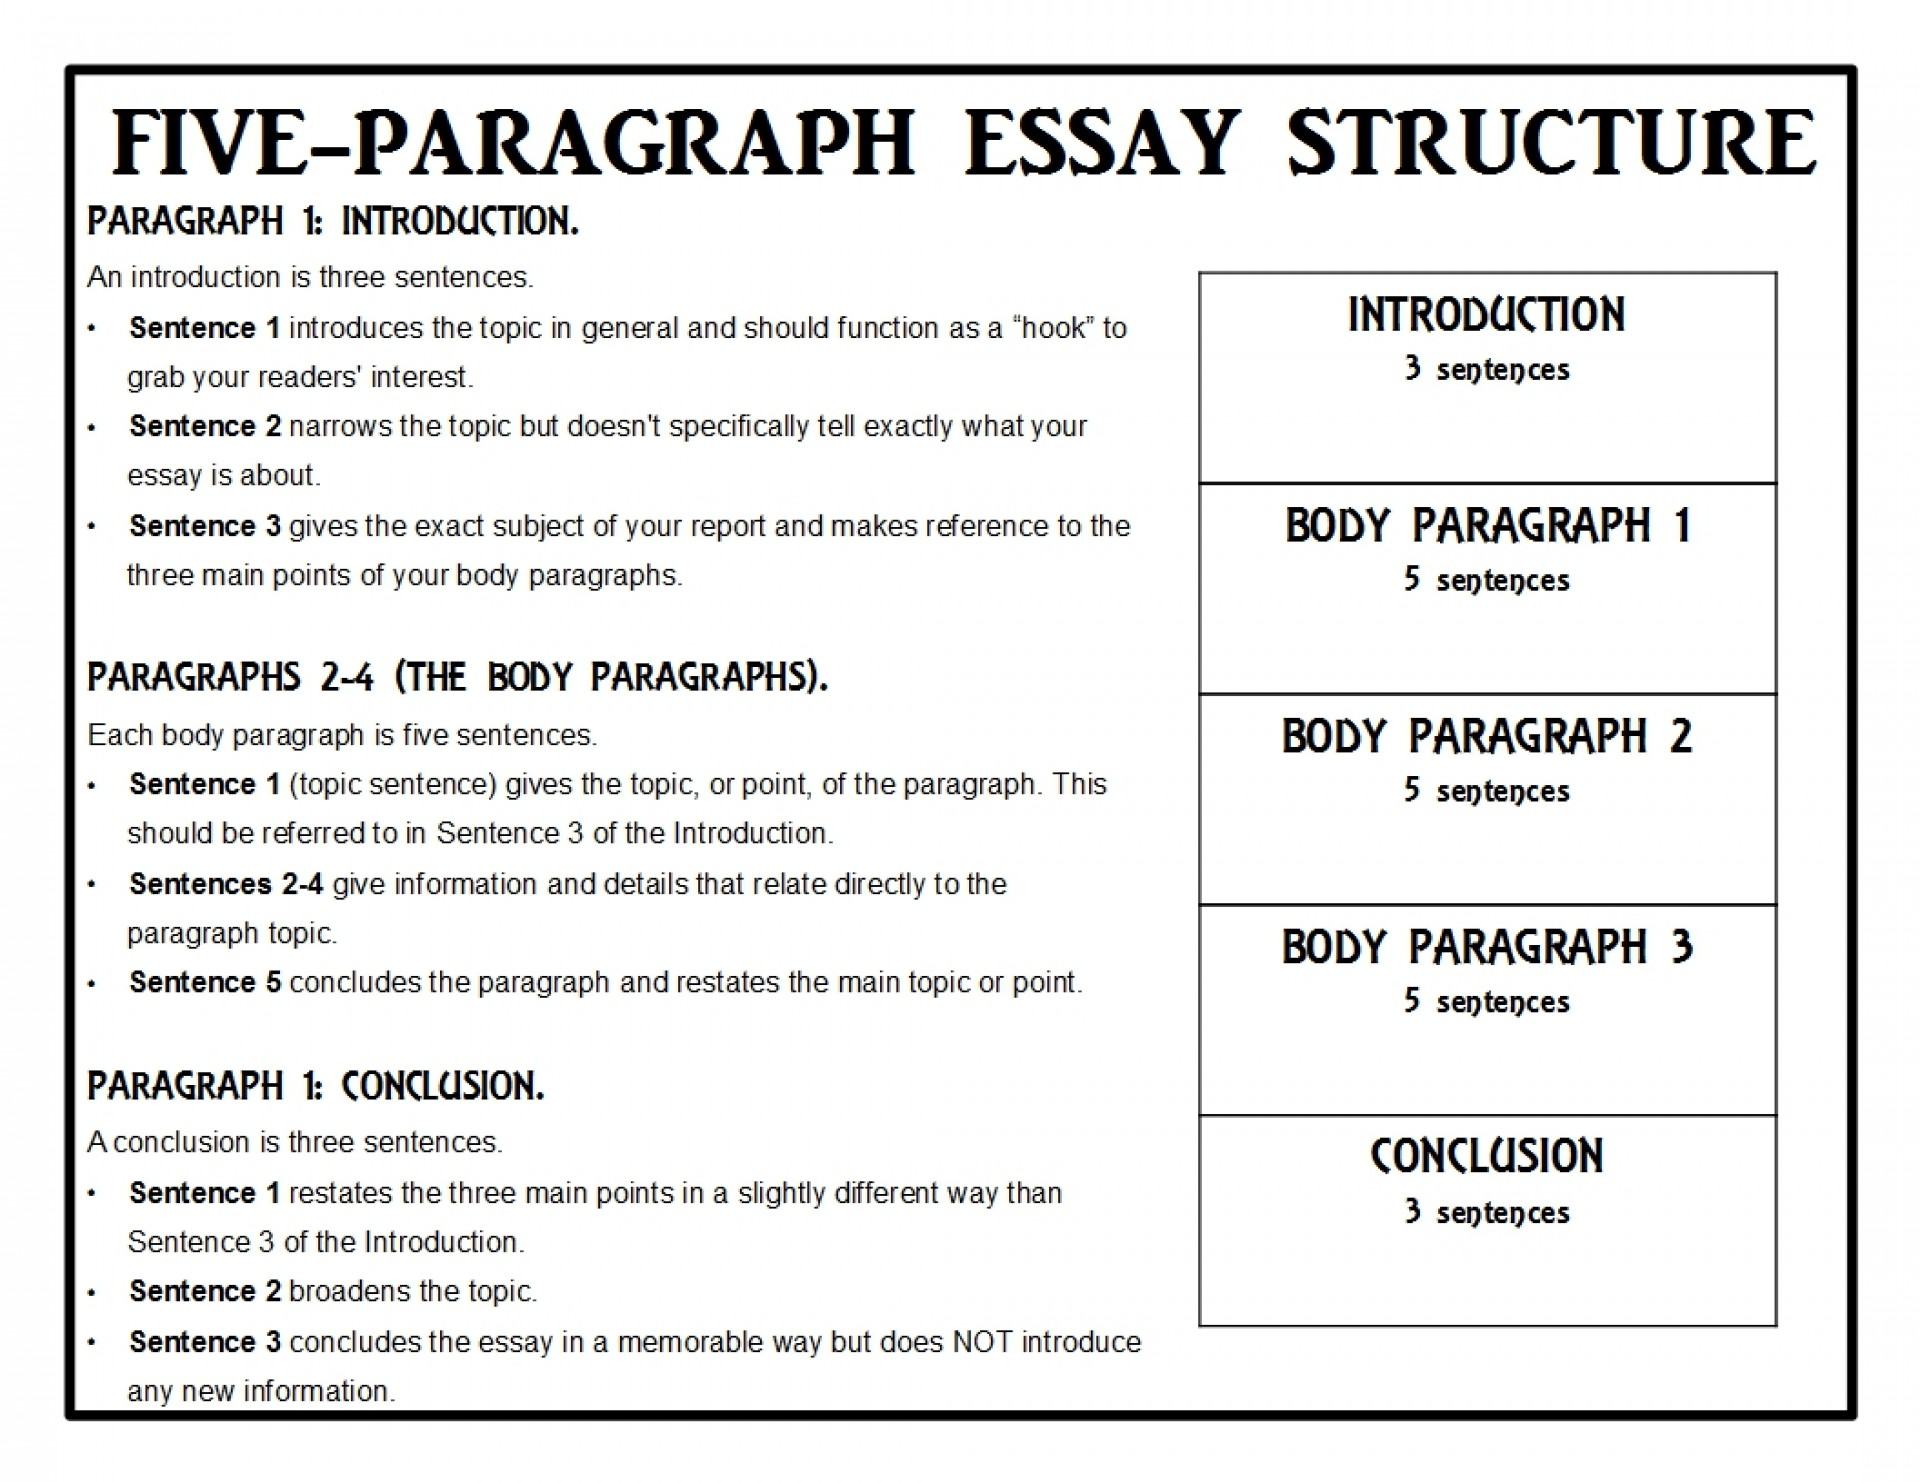 005 Animalreport1 Essay Example Five Best Paragraph Graphic Organizer High School Lesson Plan 5 Middle Pdf 1920